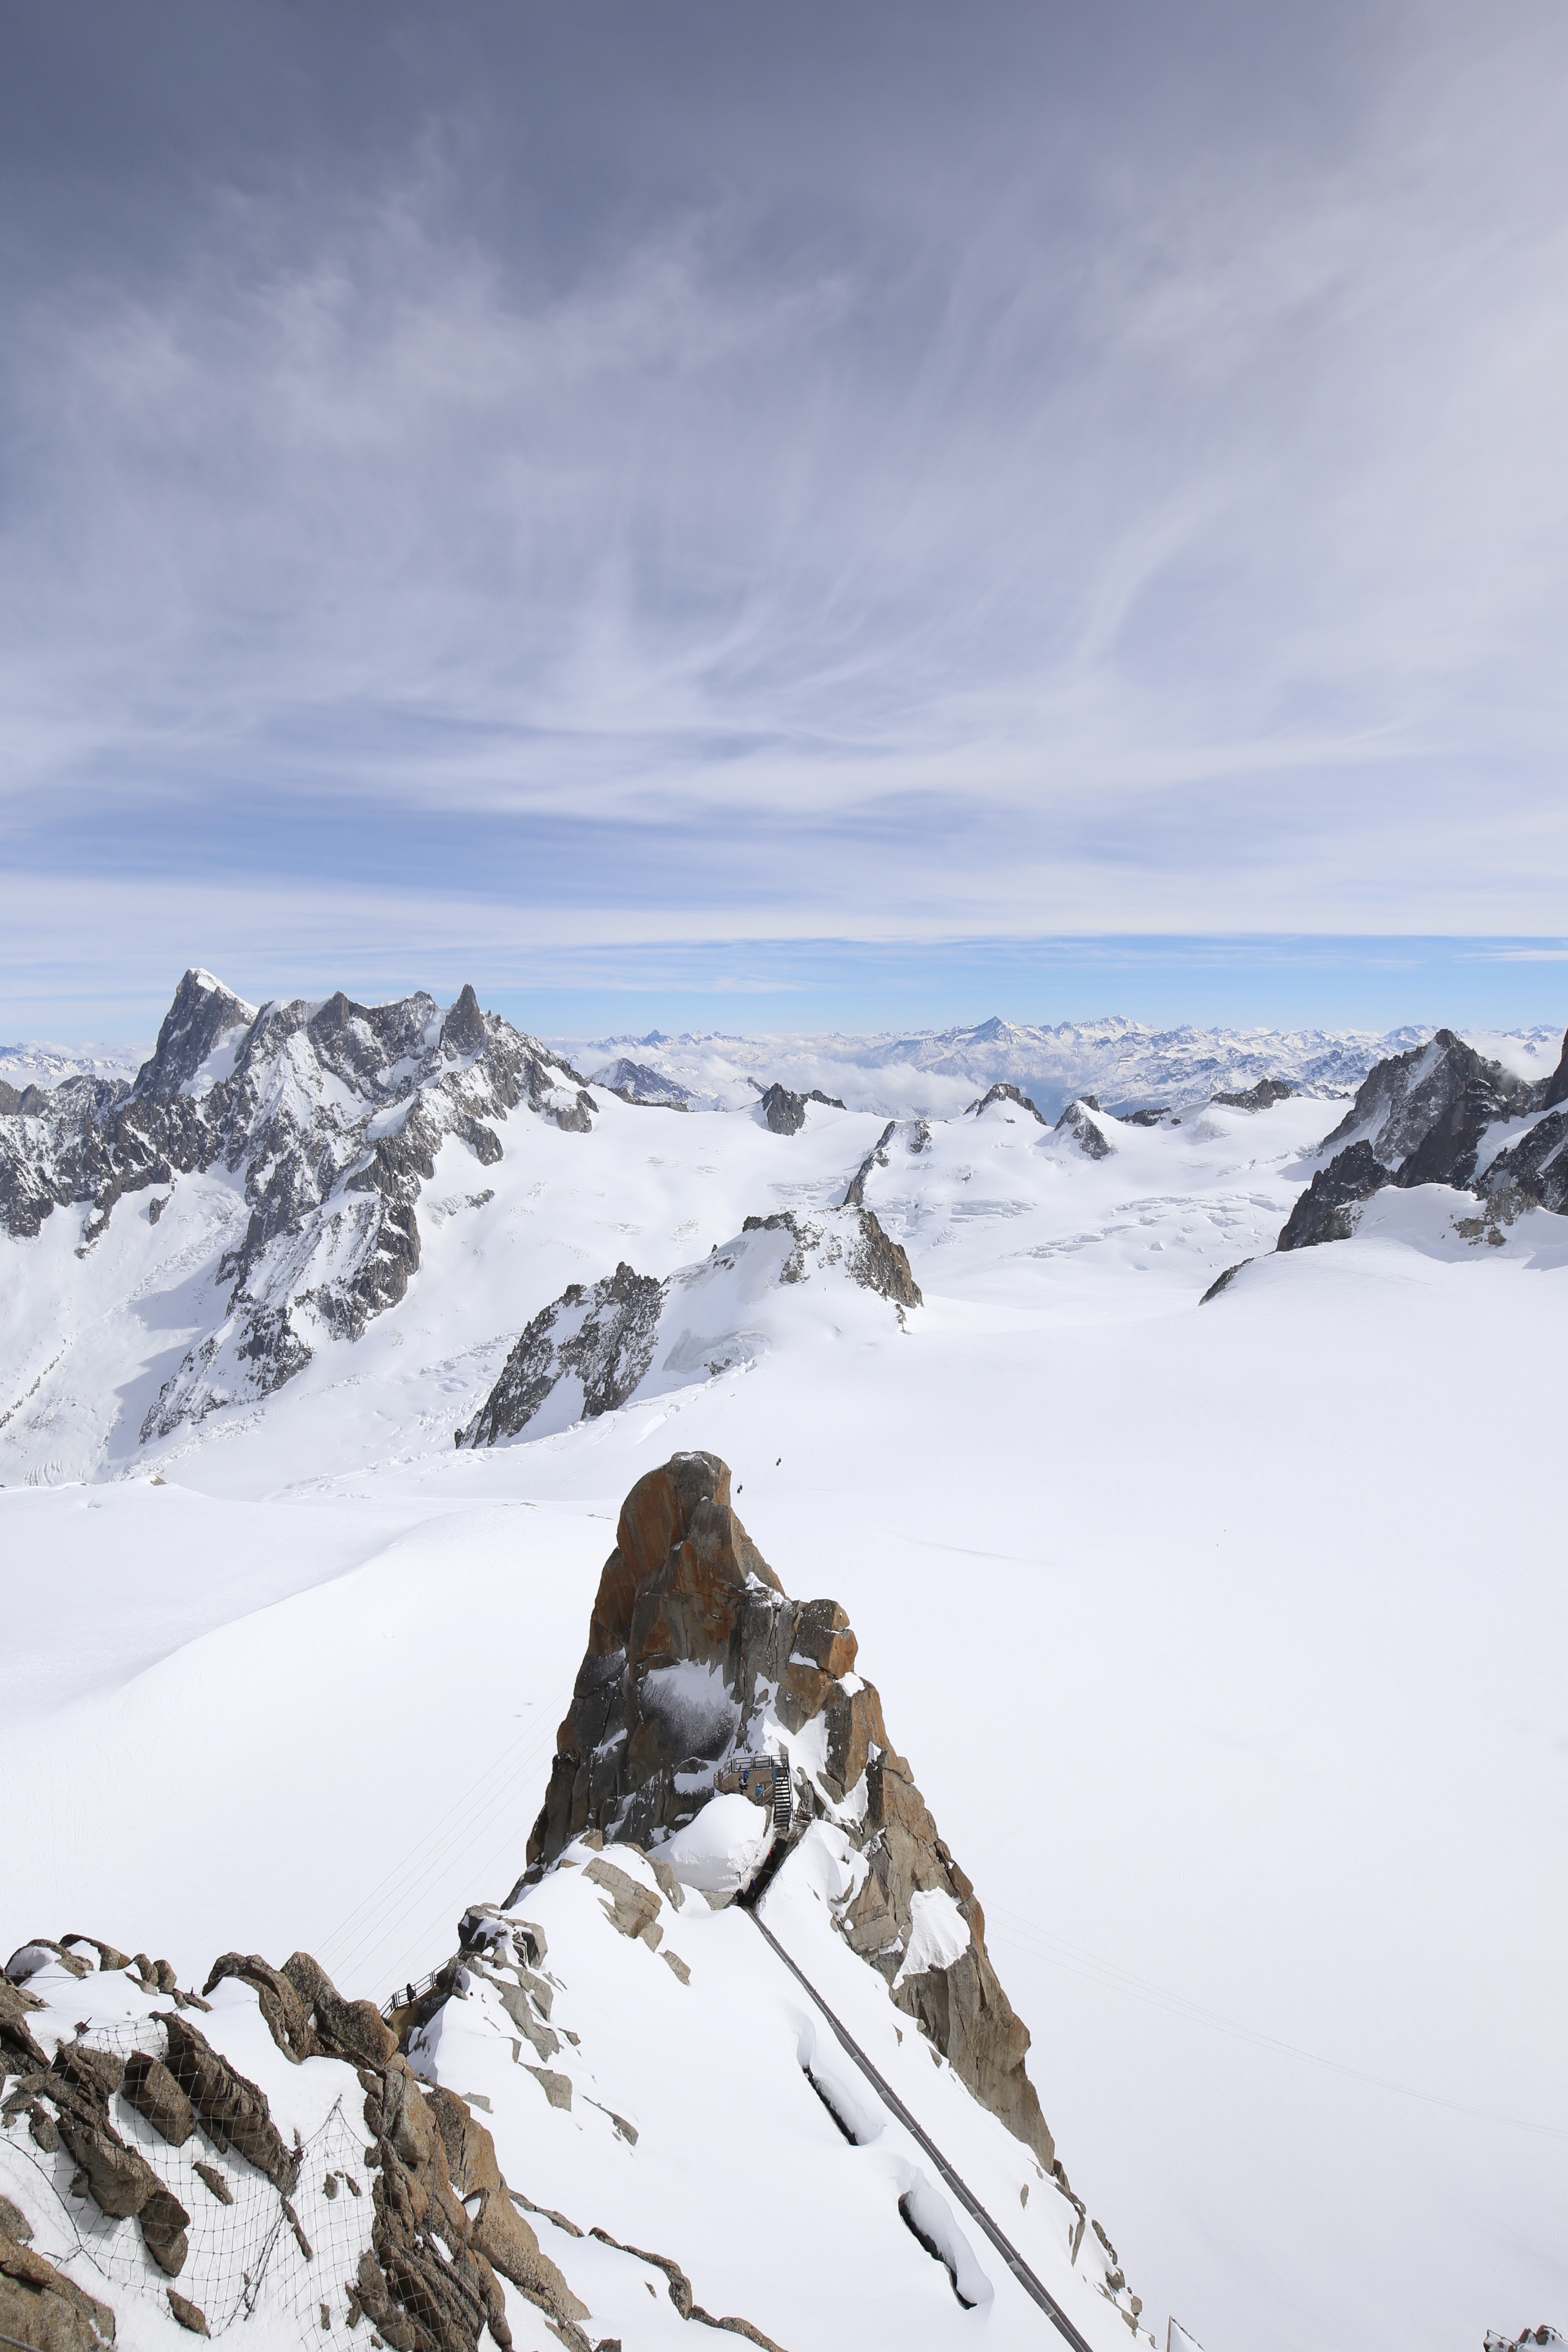 The beautiful peaks of the Alps and Mont Blanc.